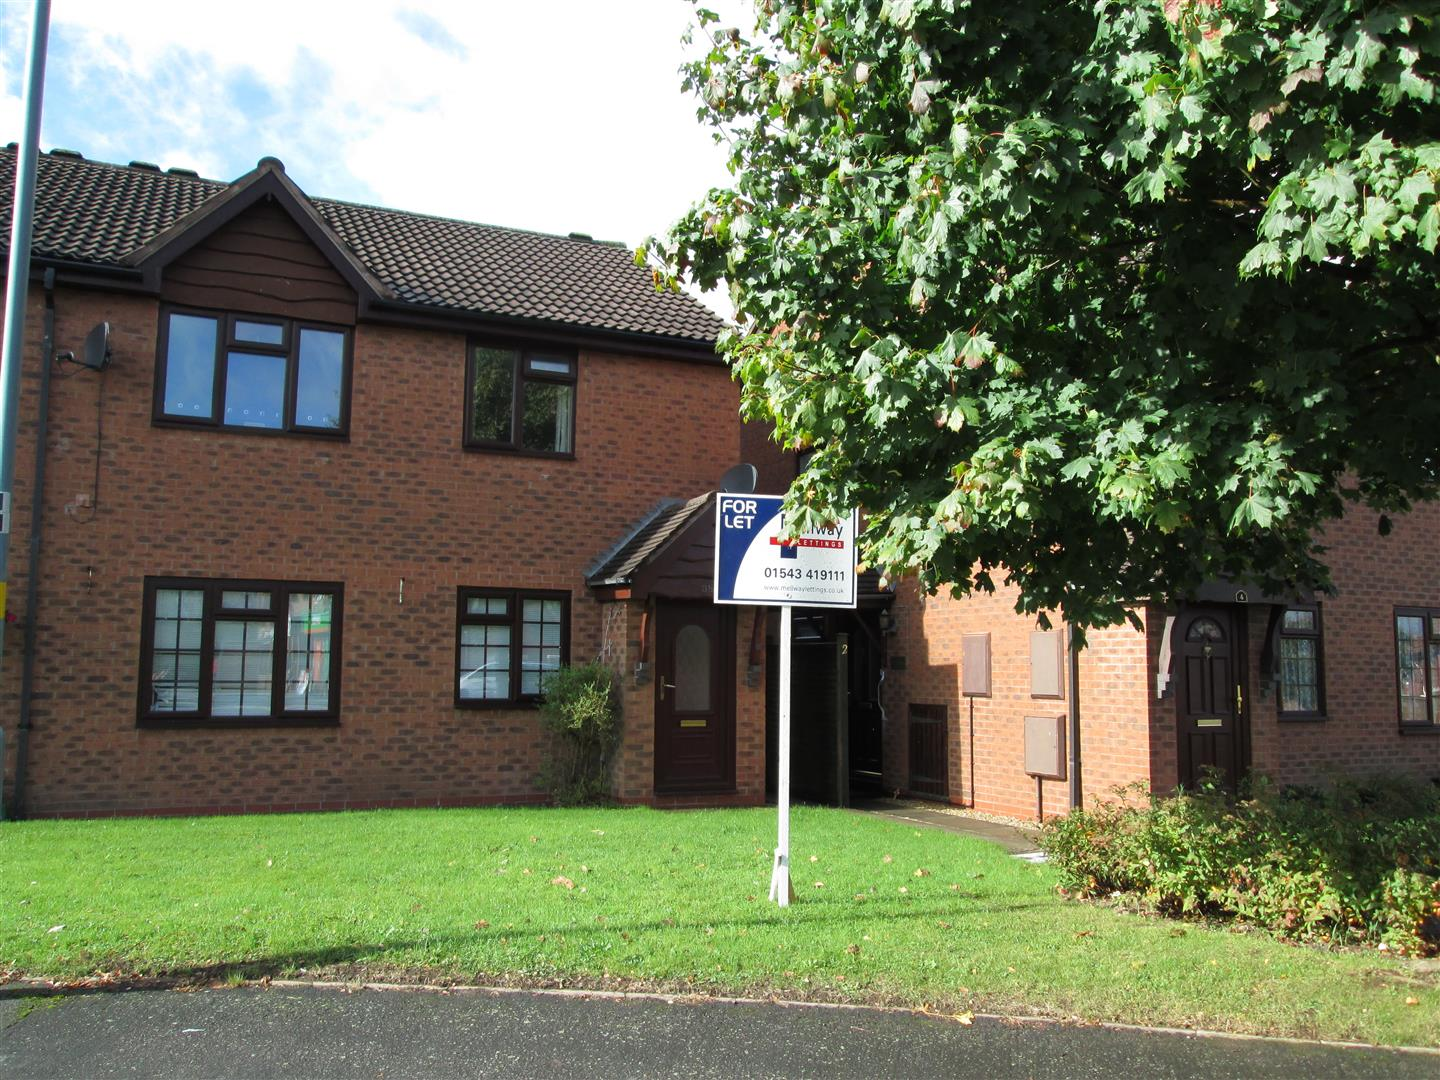 Bishops Way, Four Oaks, Sutton Coldfield